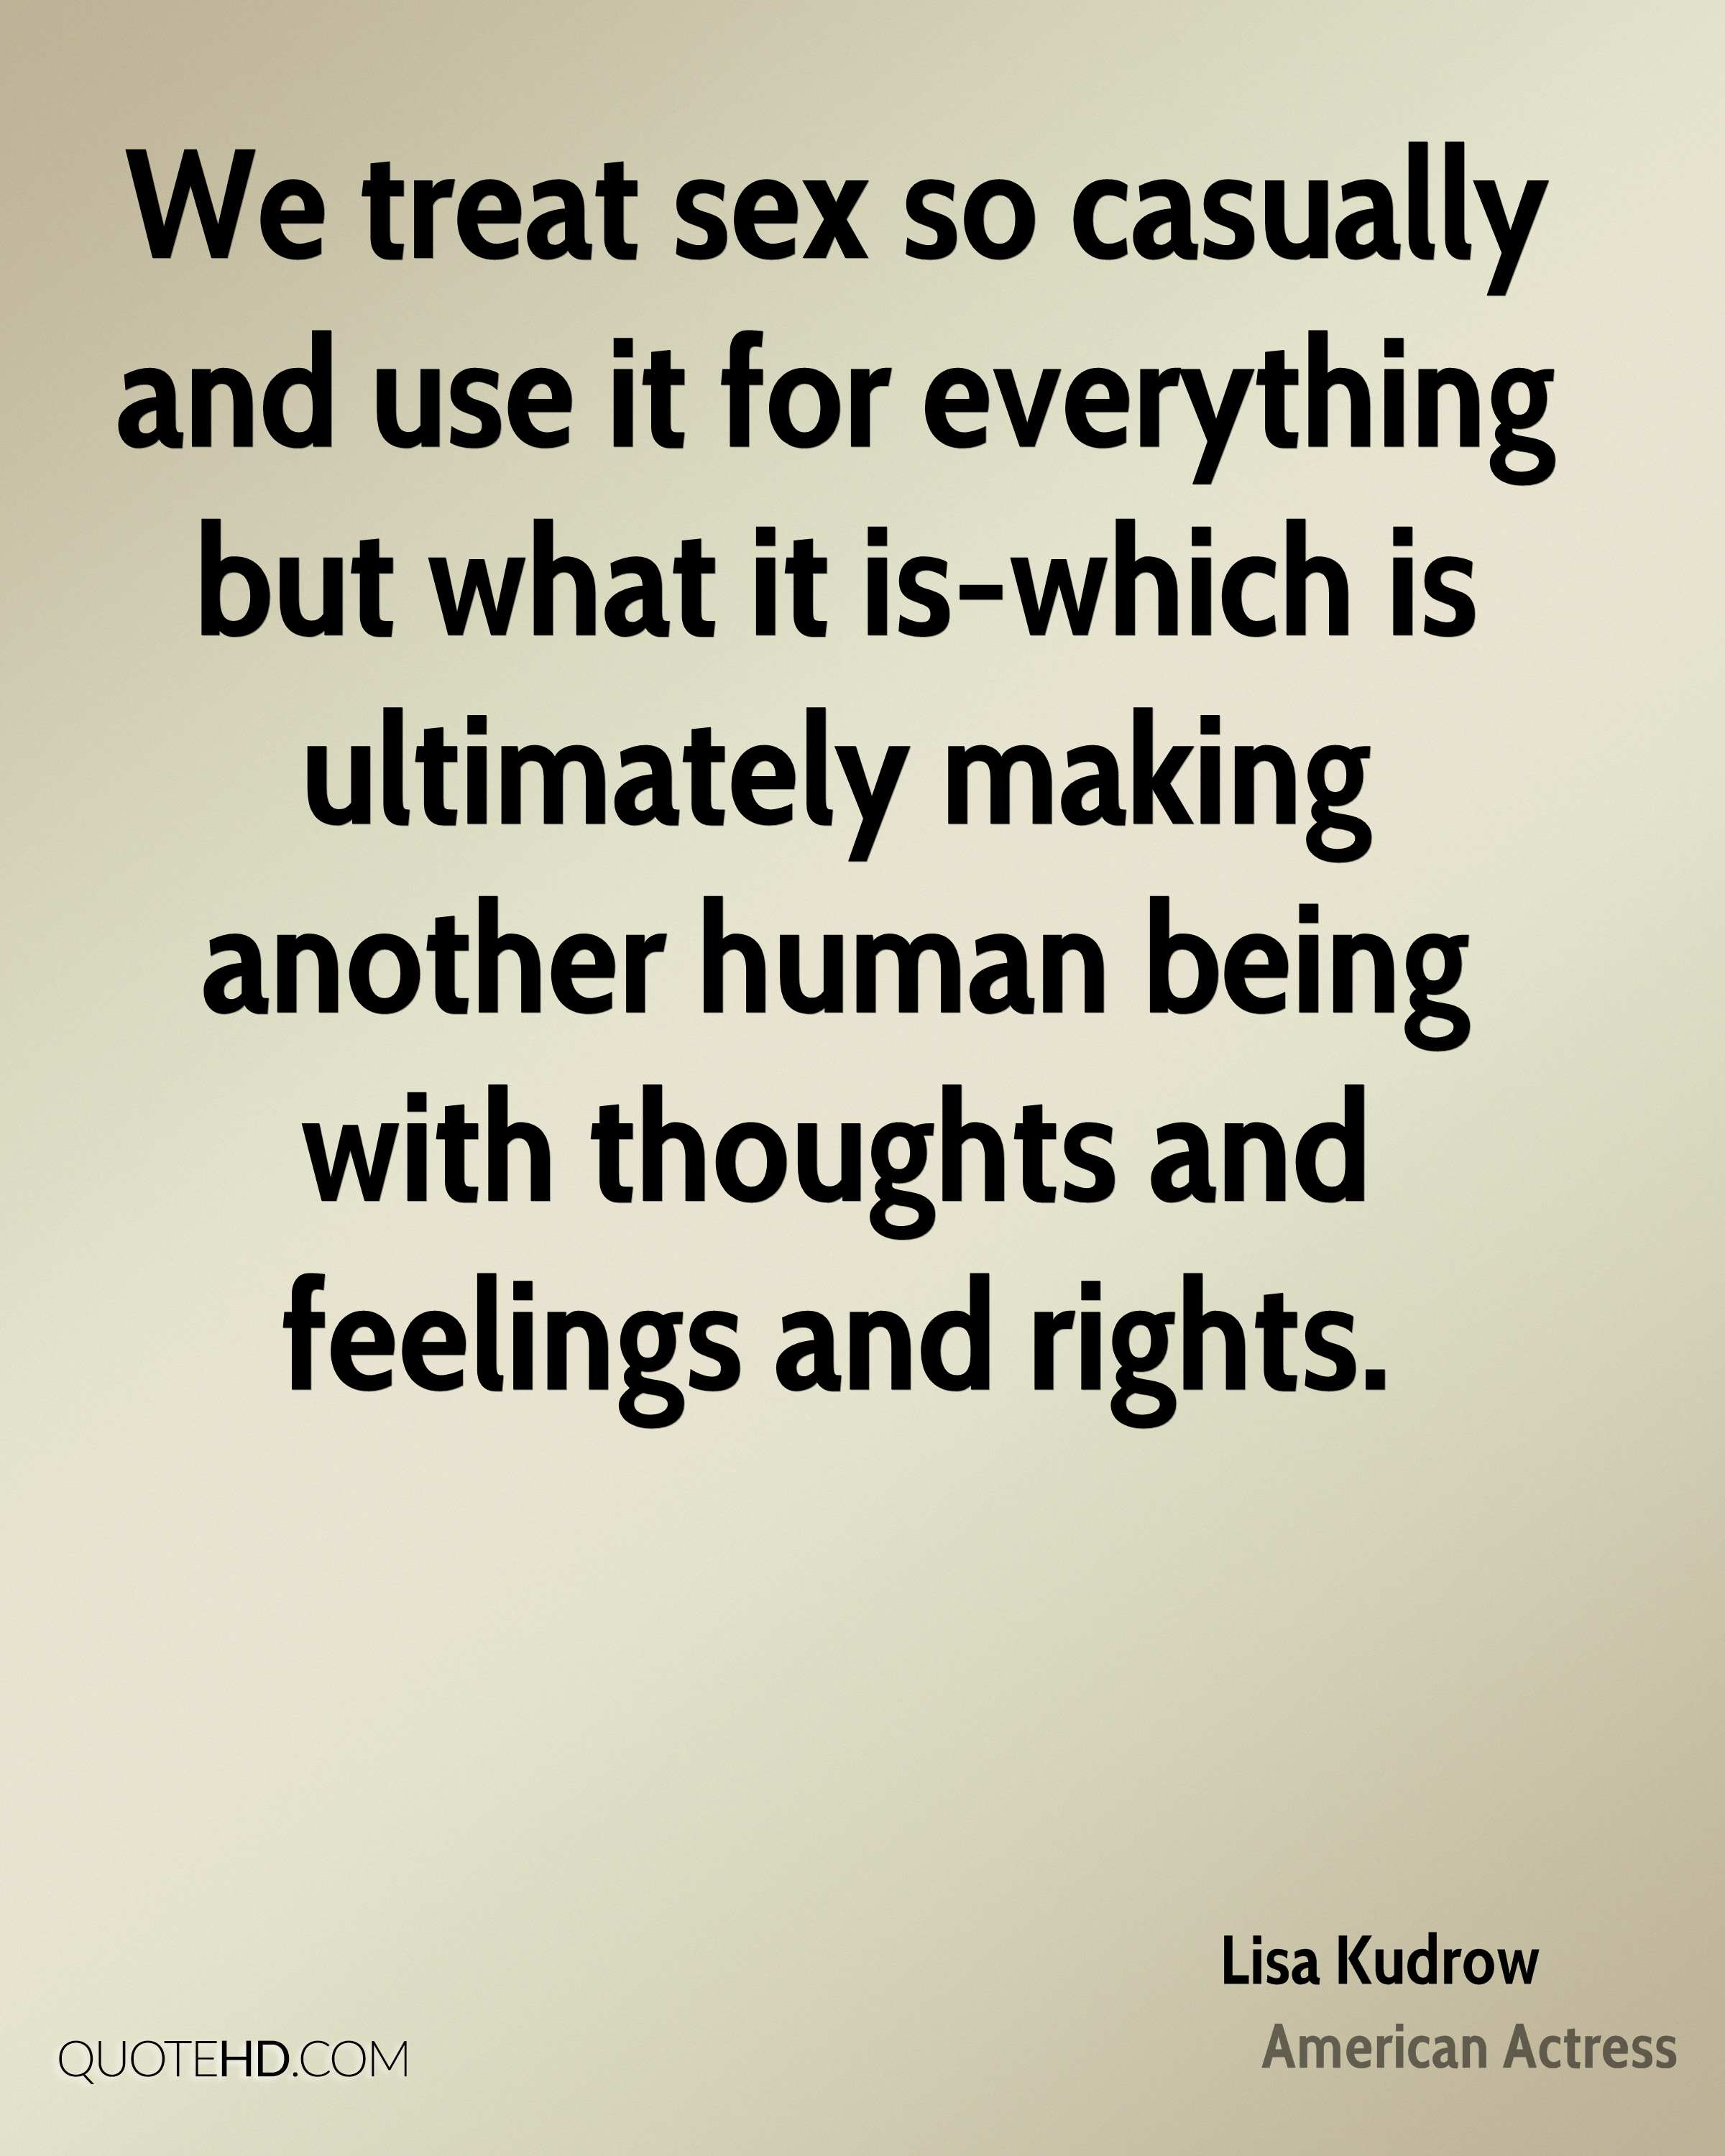 We treat sex so casually and use it for everything but what it is-which is ultimately making another human being with thoughts and feelings and rights.